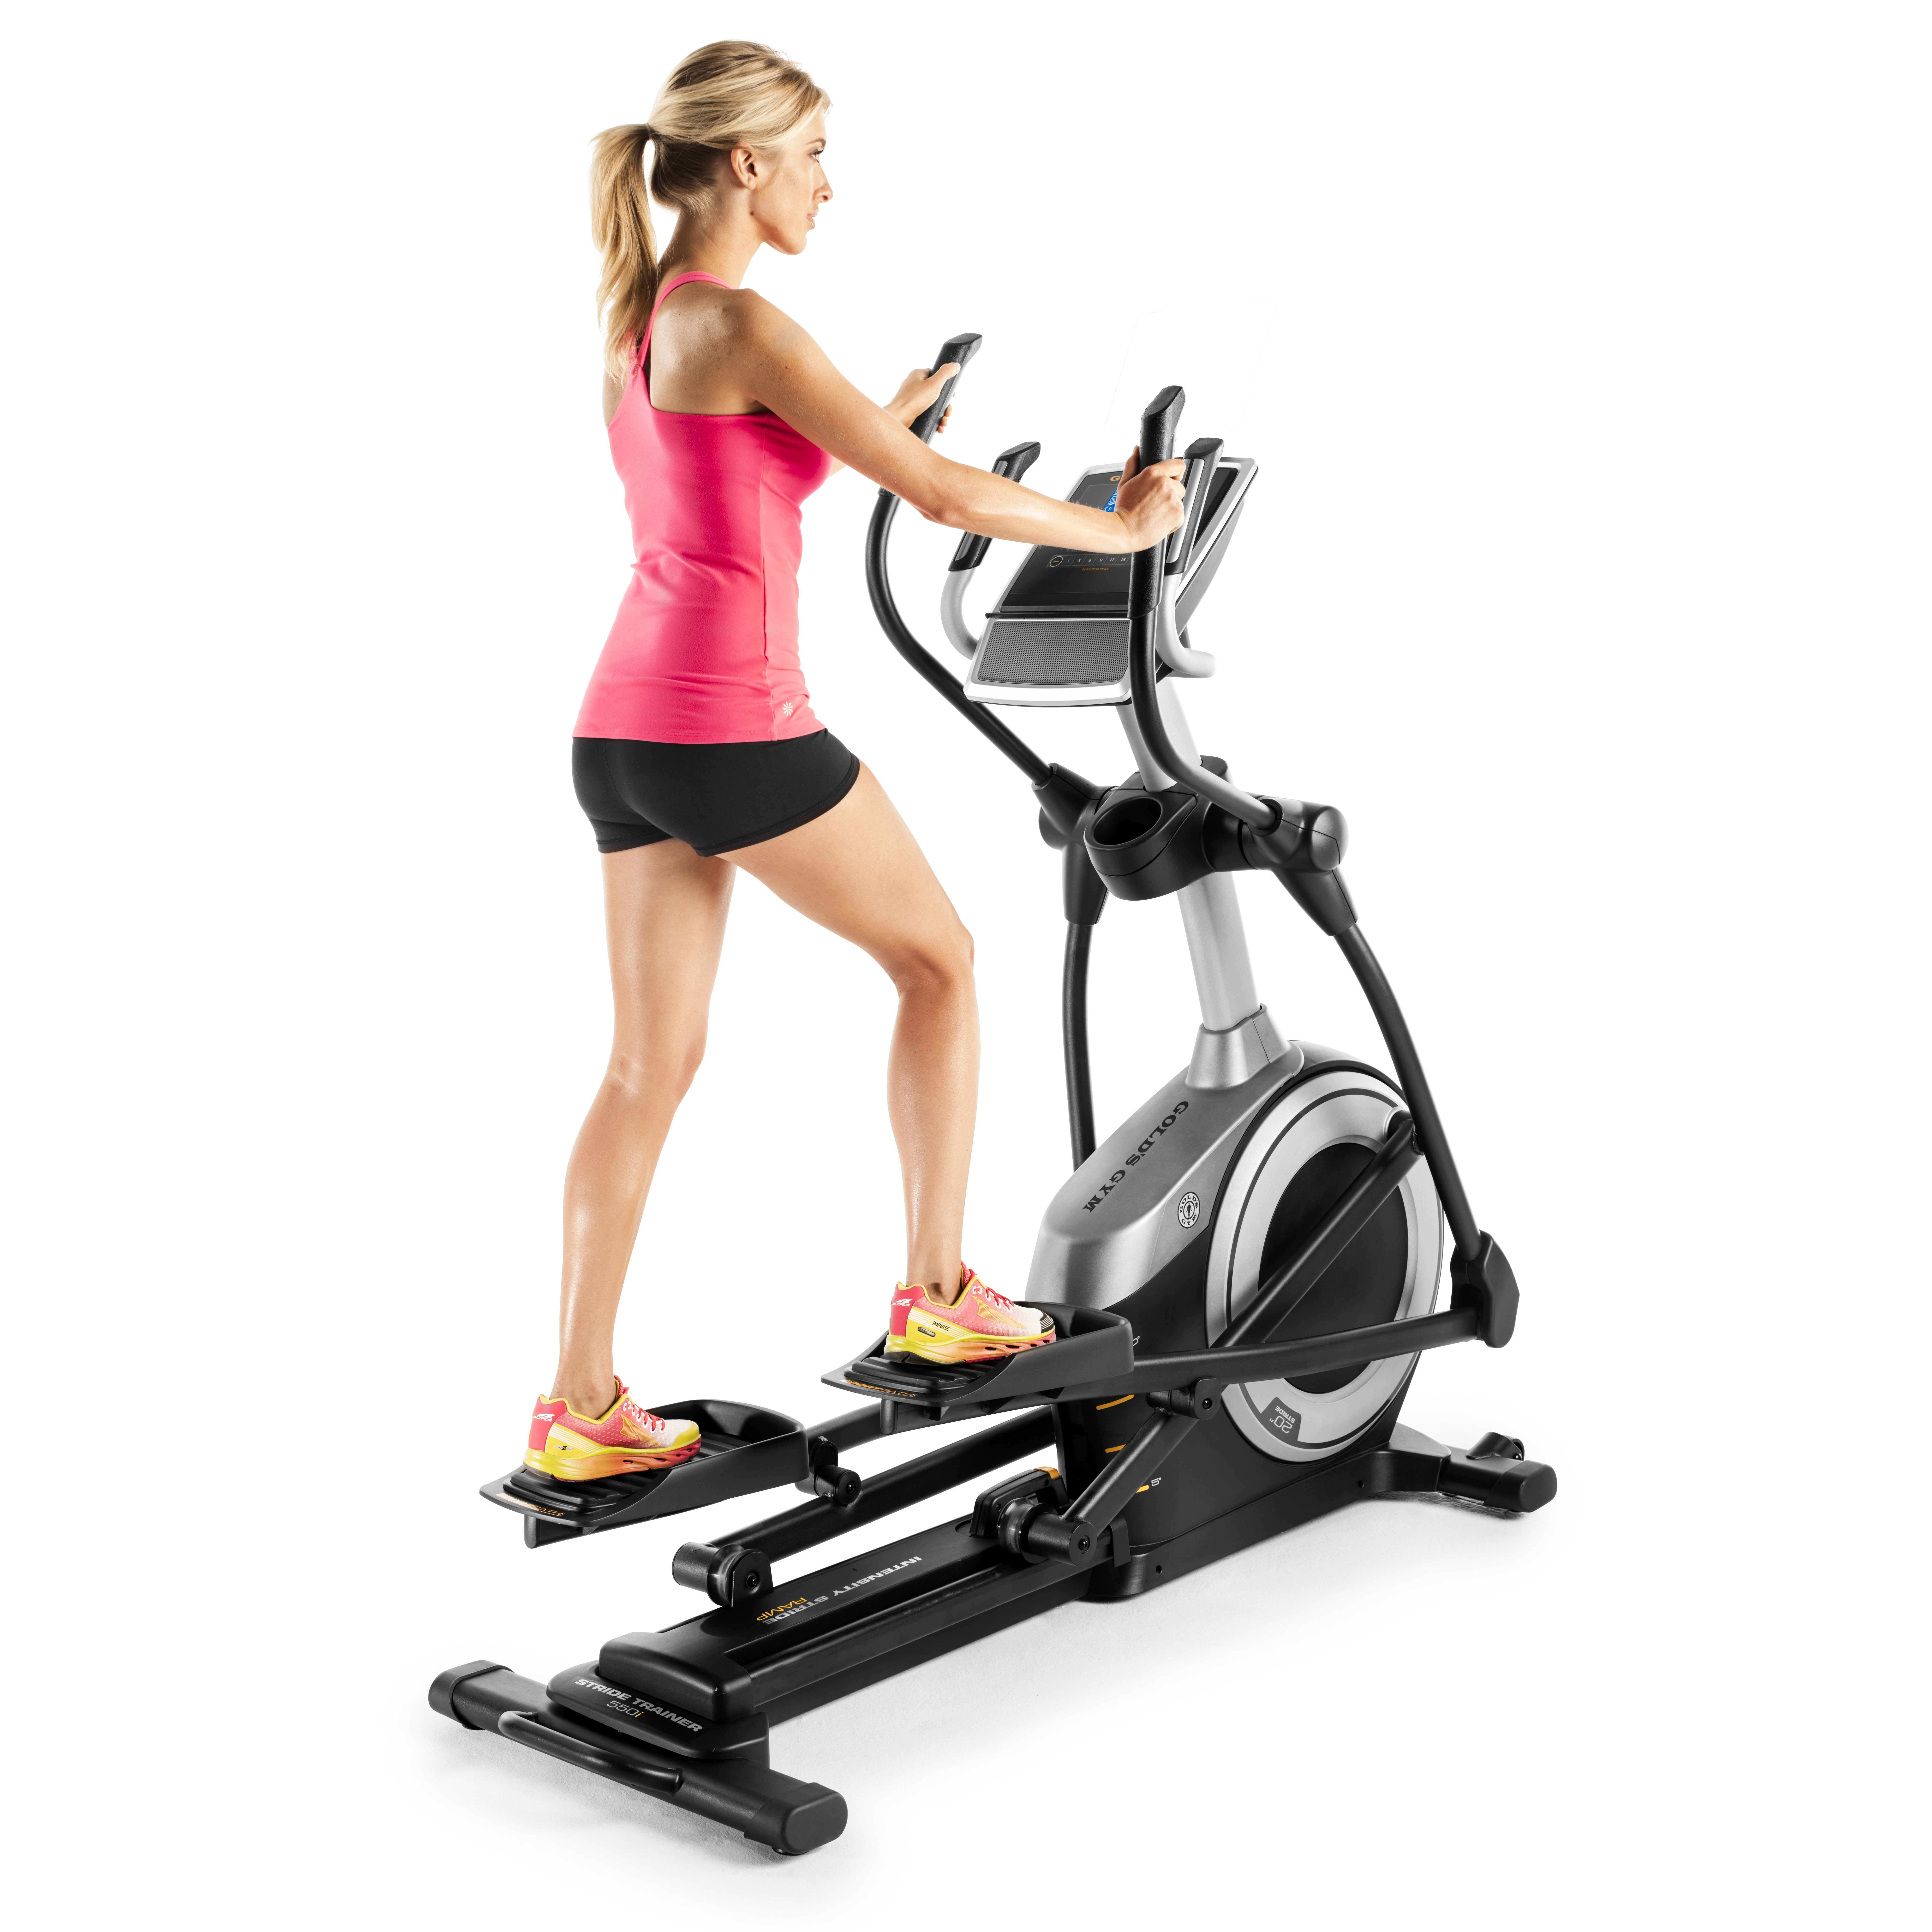 Gold's Gym Stride Trainer 550i Elliptical by Icon Health & Fitness Inc.